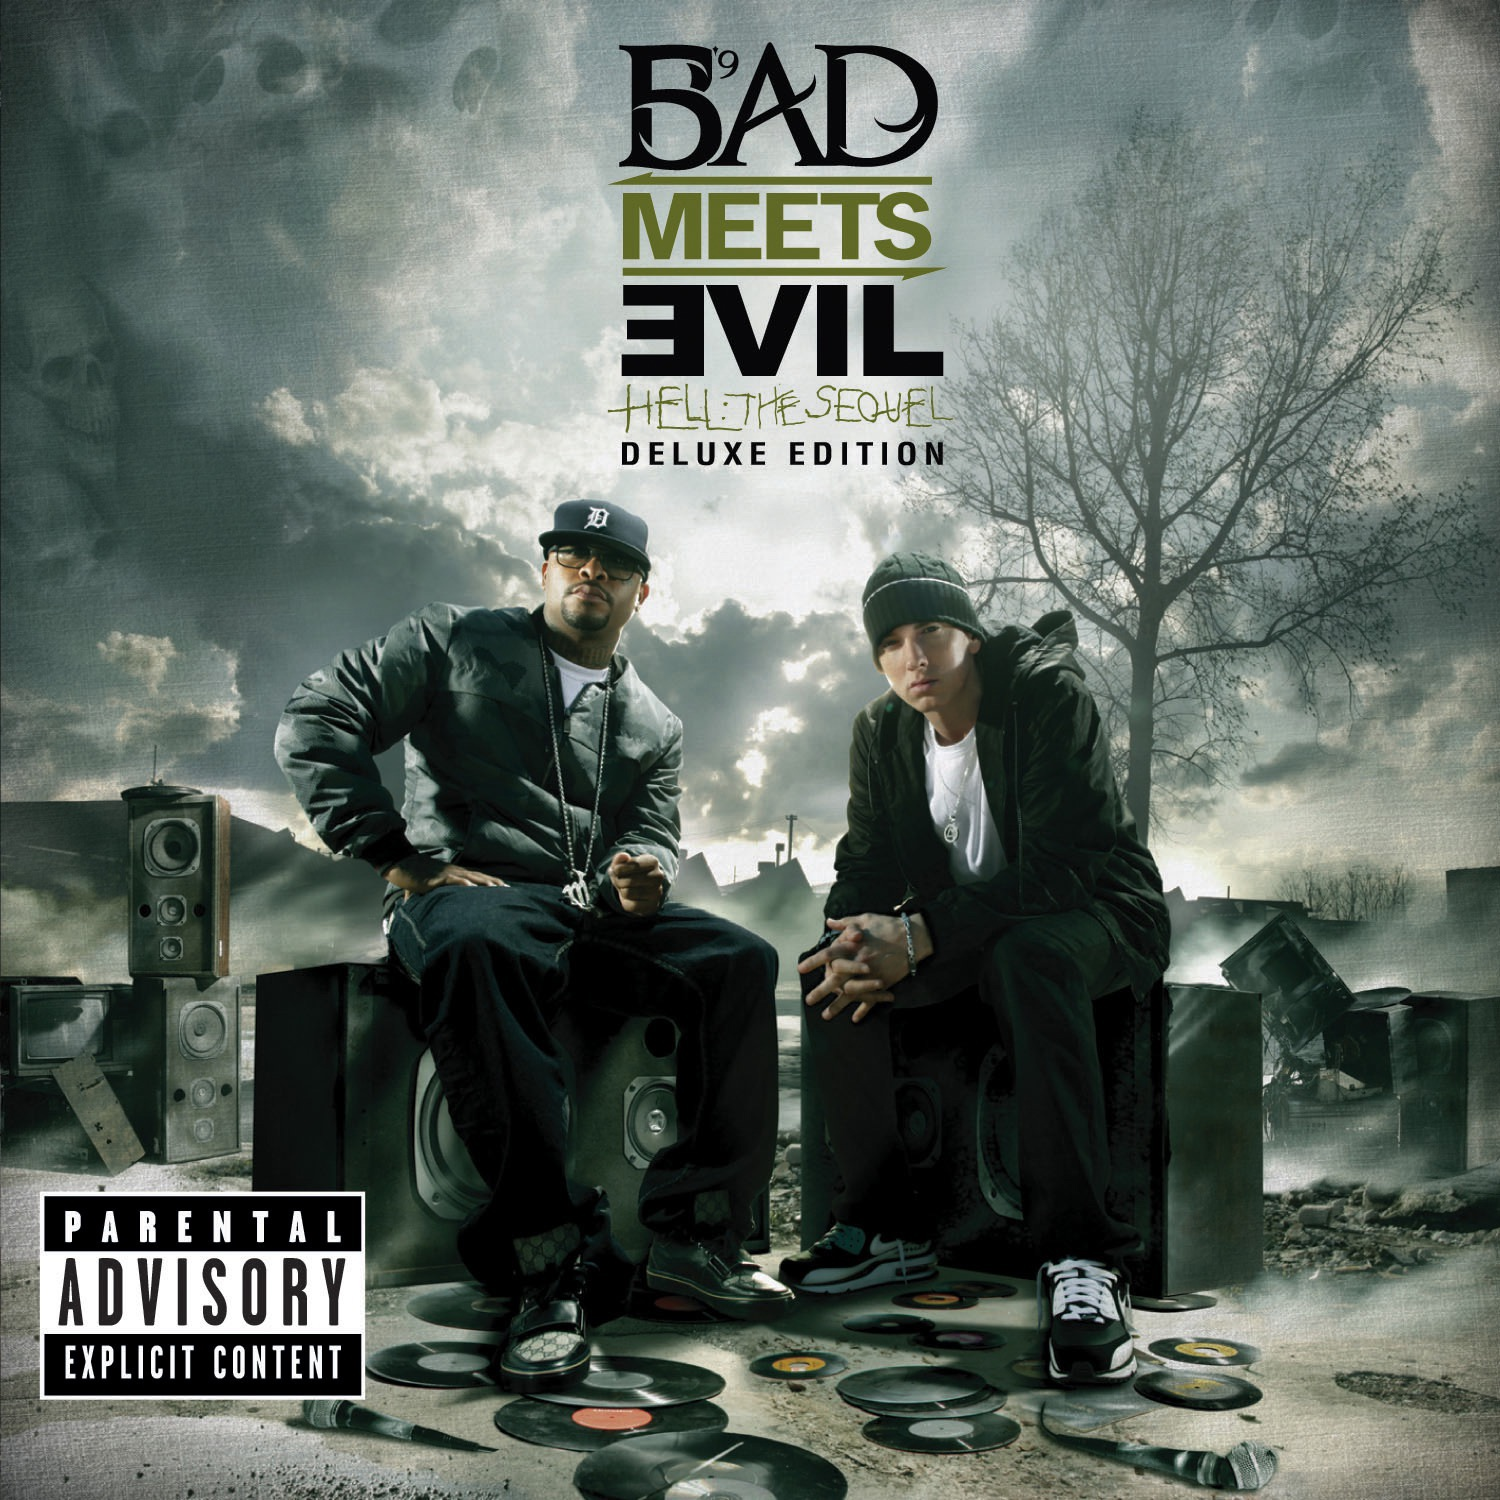 Bad Meets Evil album Hell: The Sequel (Deluxe Edition)